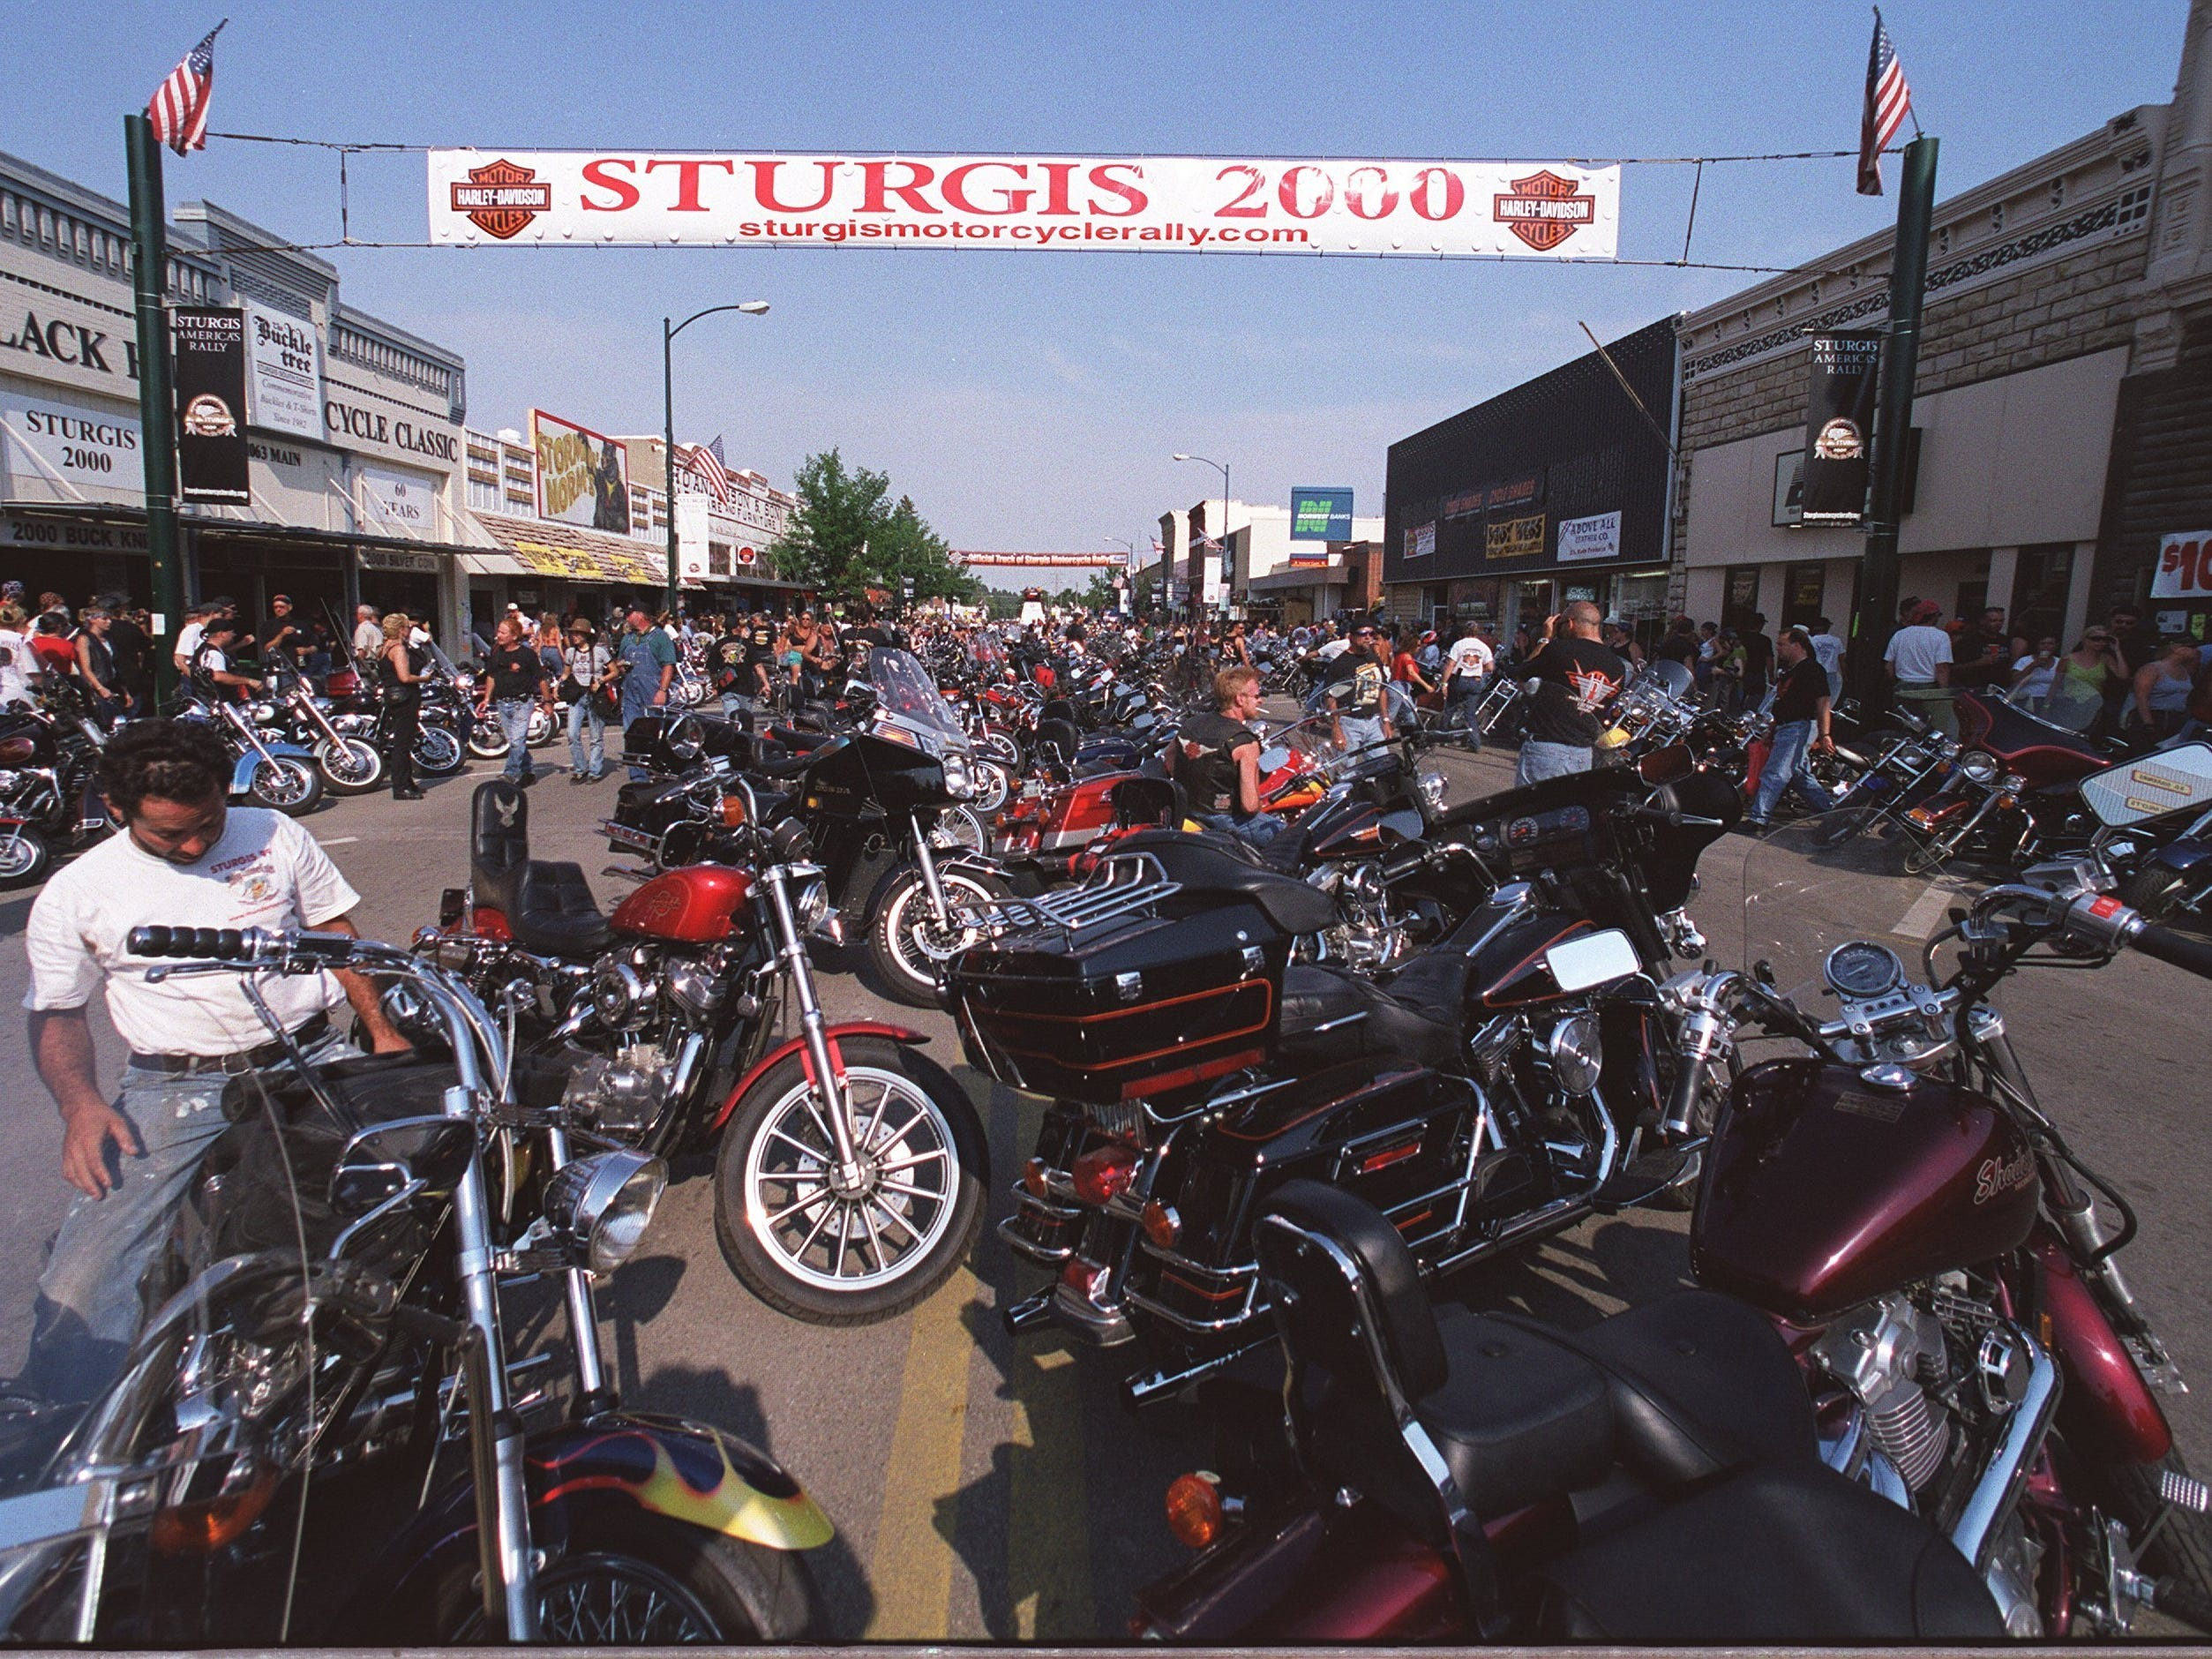 2001: Parking on the main drag is exclusively for motorcycles during bike week in Sturgis, S.D.